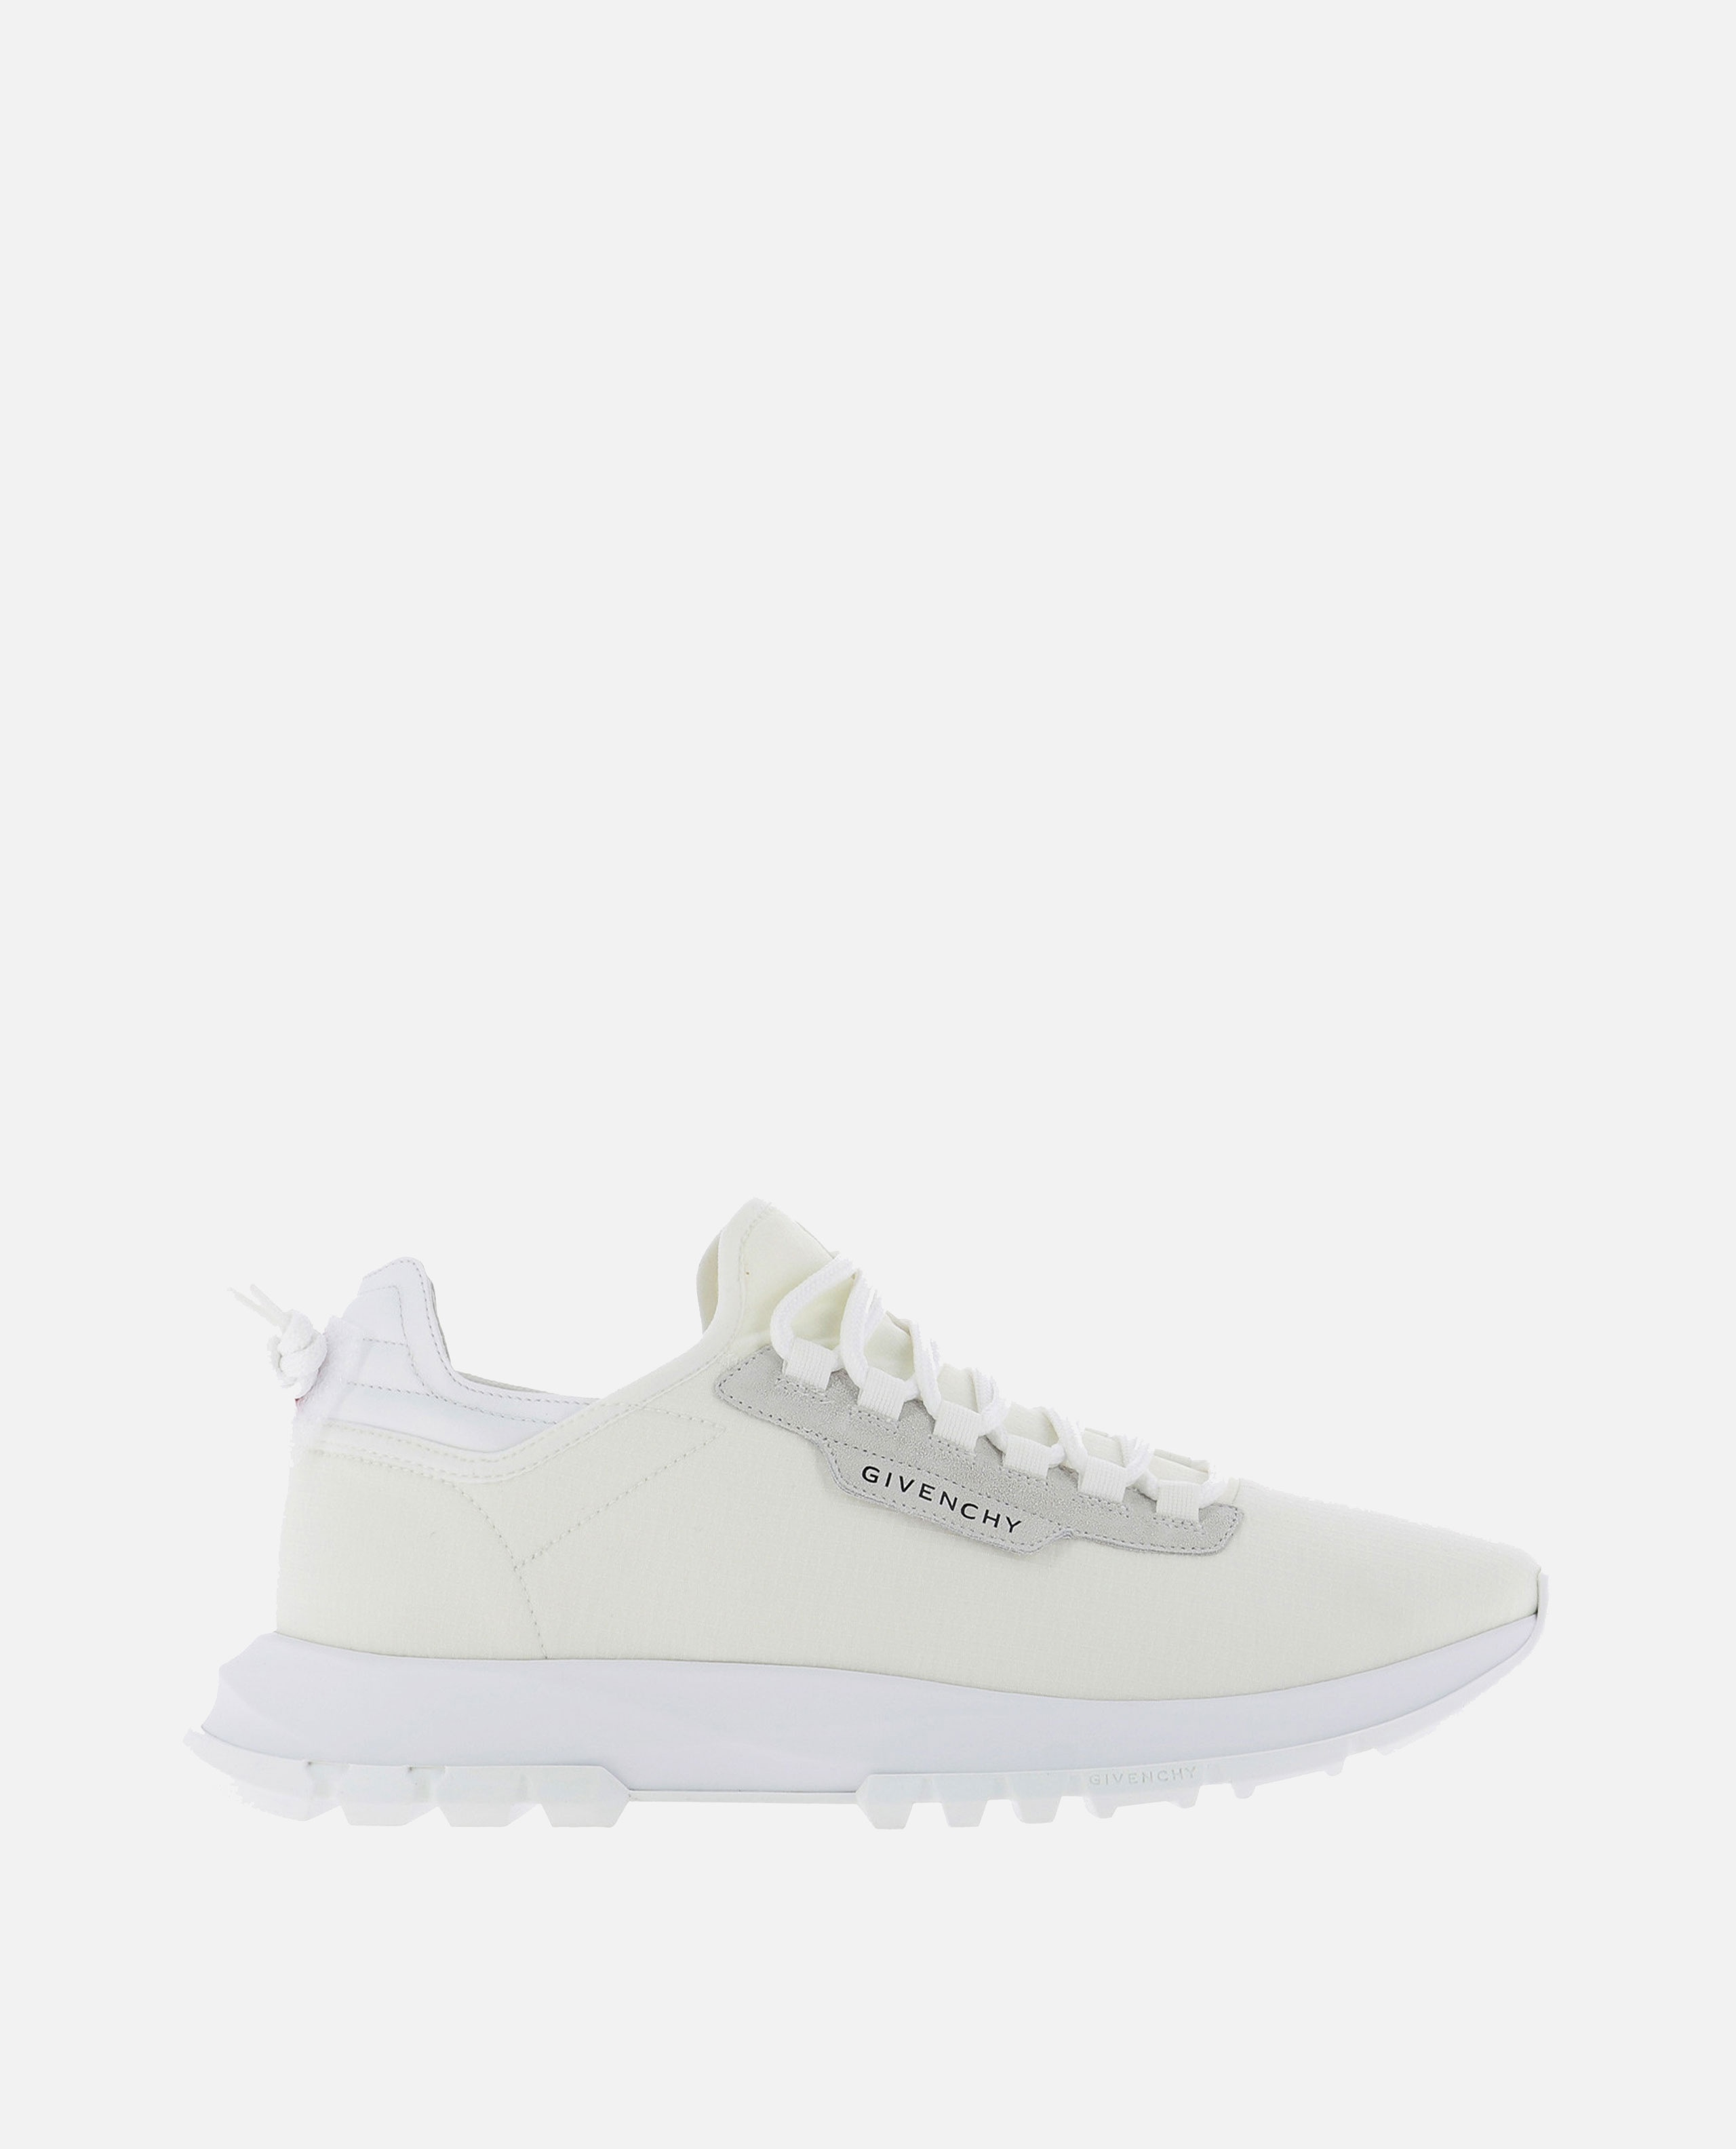 Spectre Running Sneakers Men Givenchy 000229010033789 1